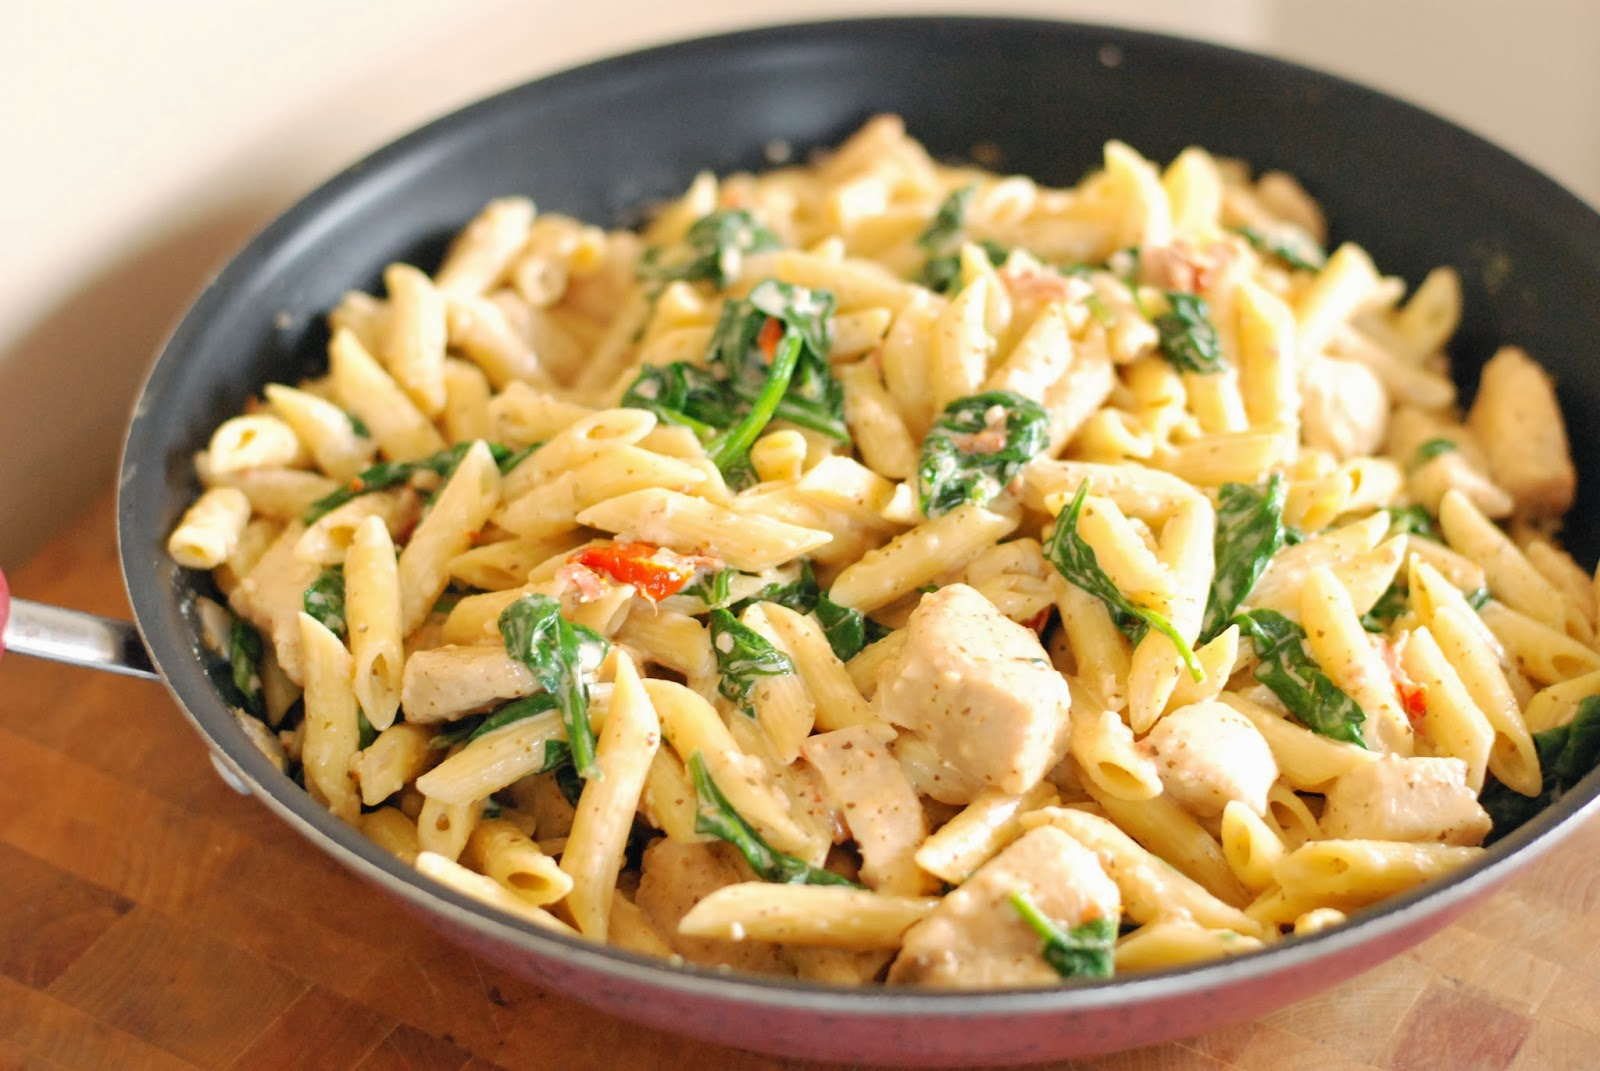 Creamy Sun-dried Tomato Pesto Chicken Pasta - Aunt Bee's Recipes